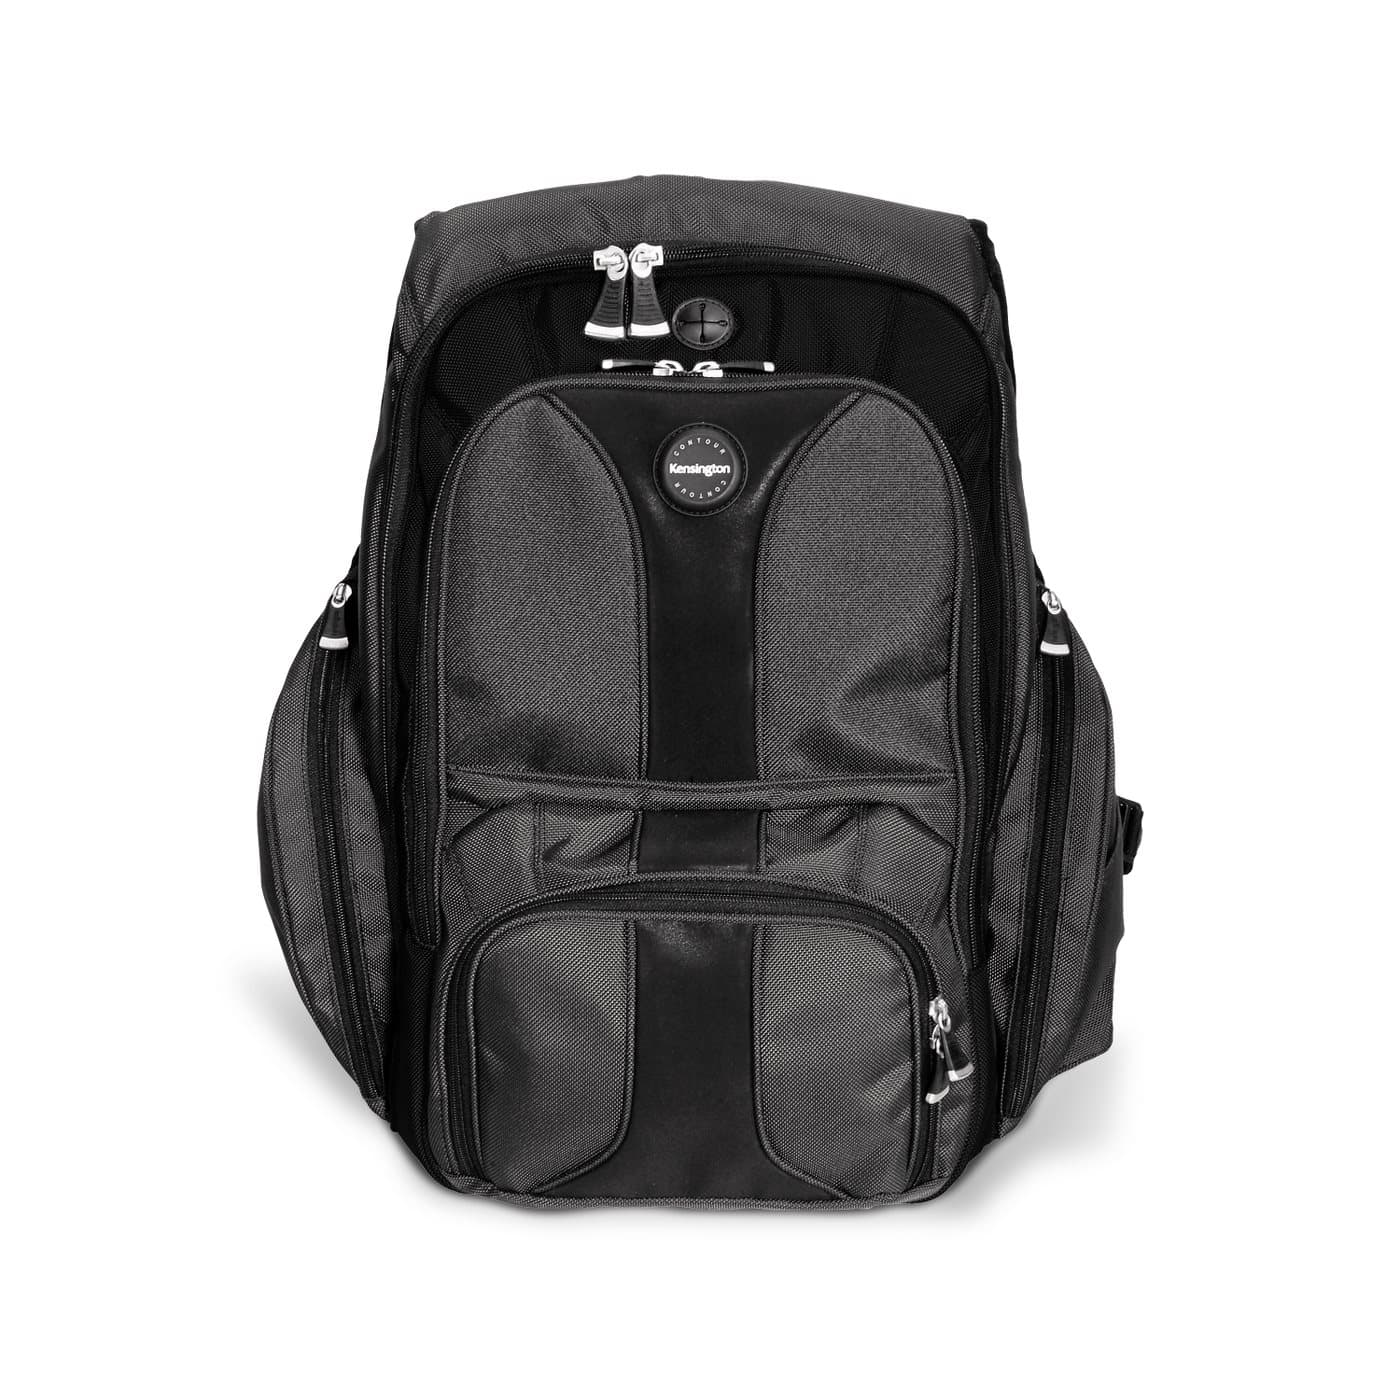 Kensington - Products - Laptop Bags - Contour™ Laptop Backpack ...